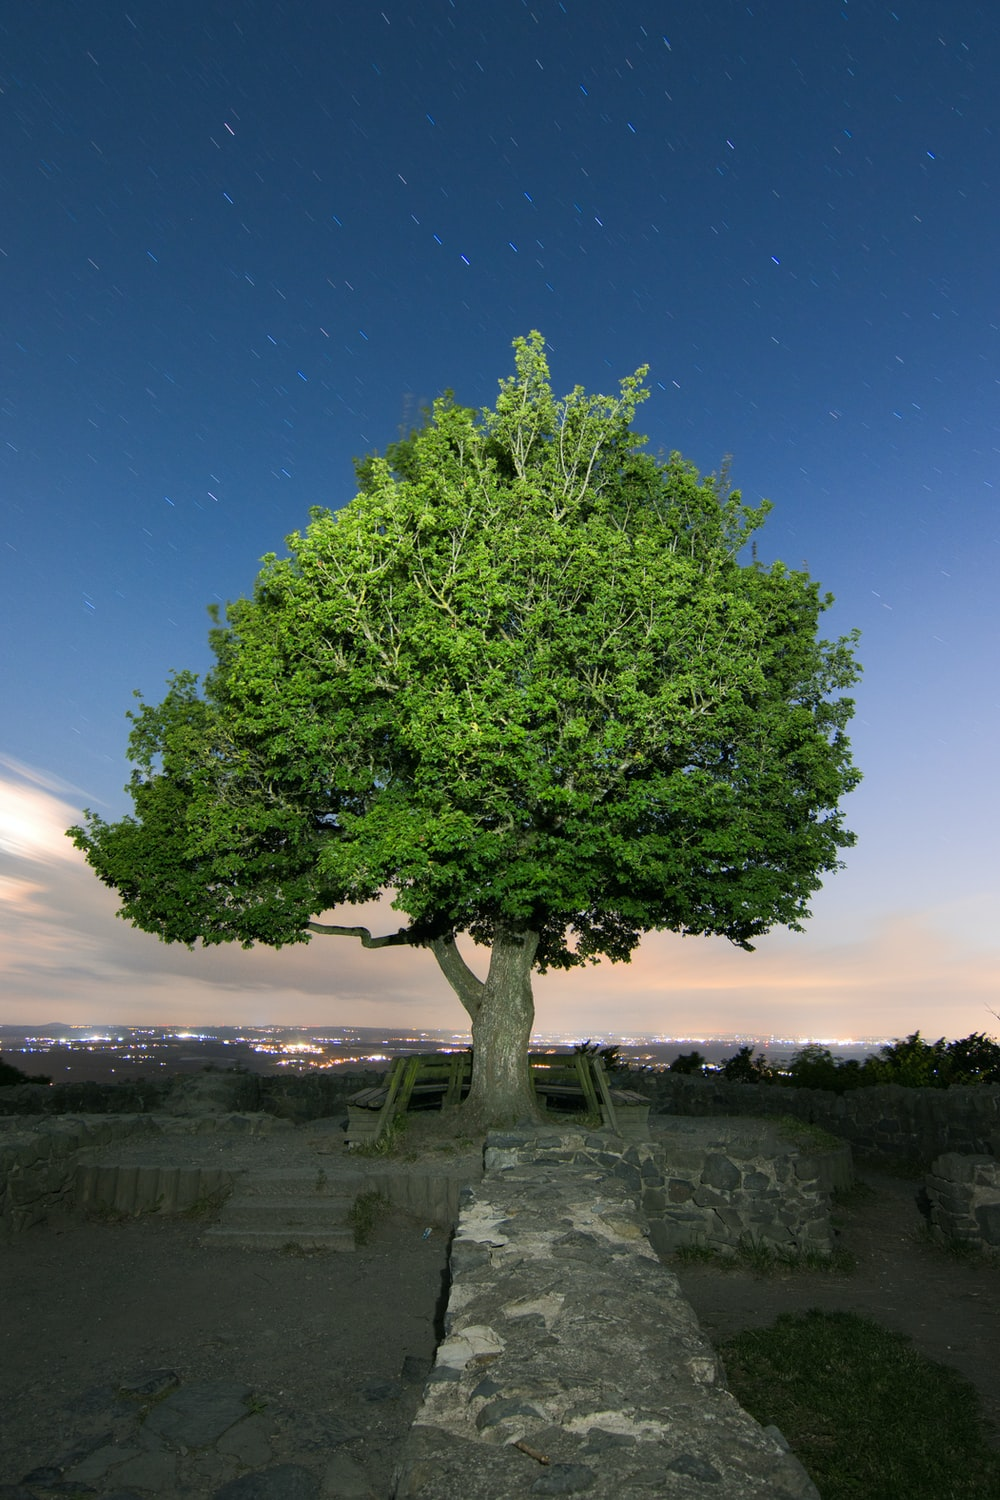 green tree on gray rock formation under blue sky during daytime